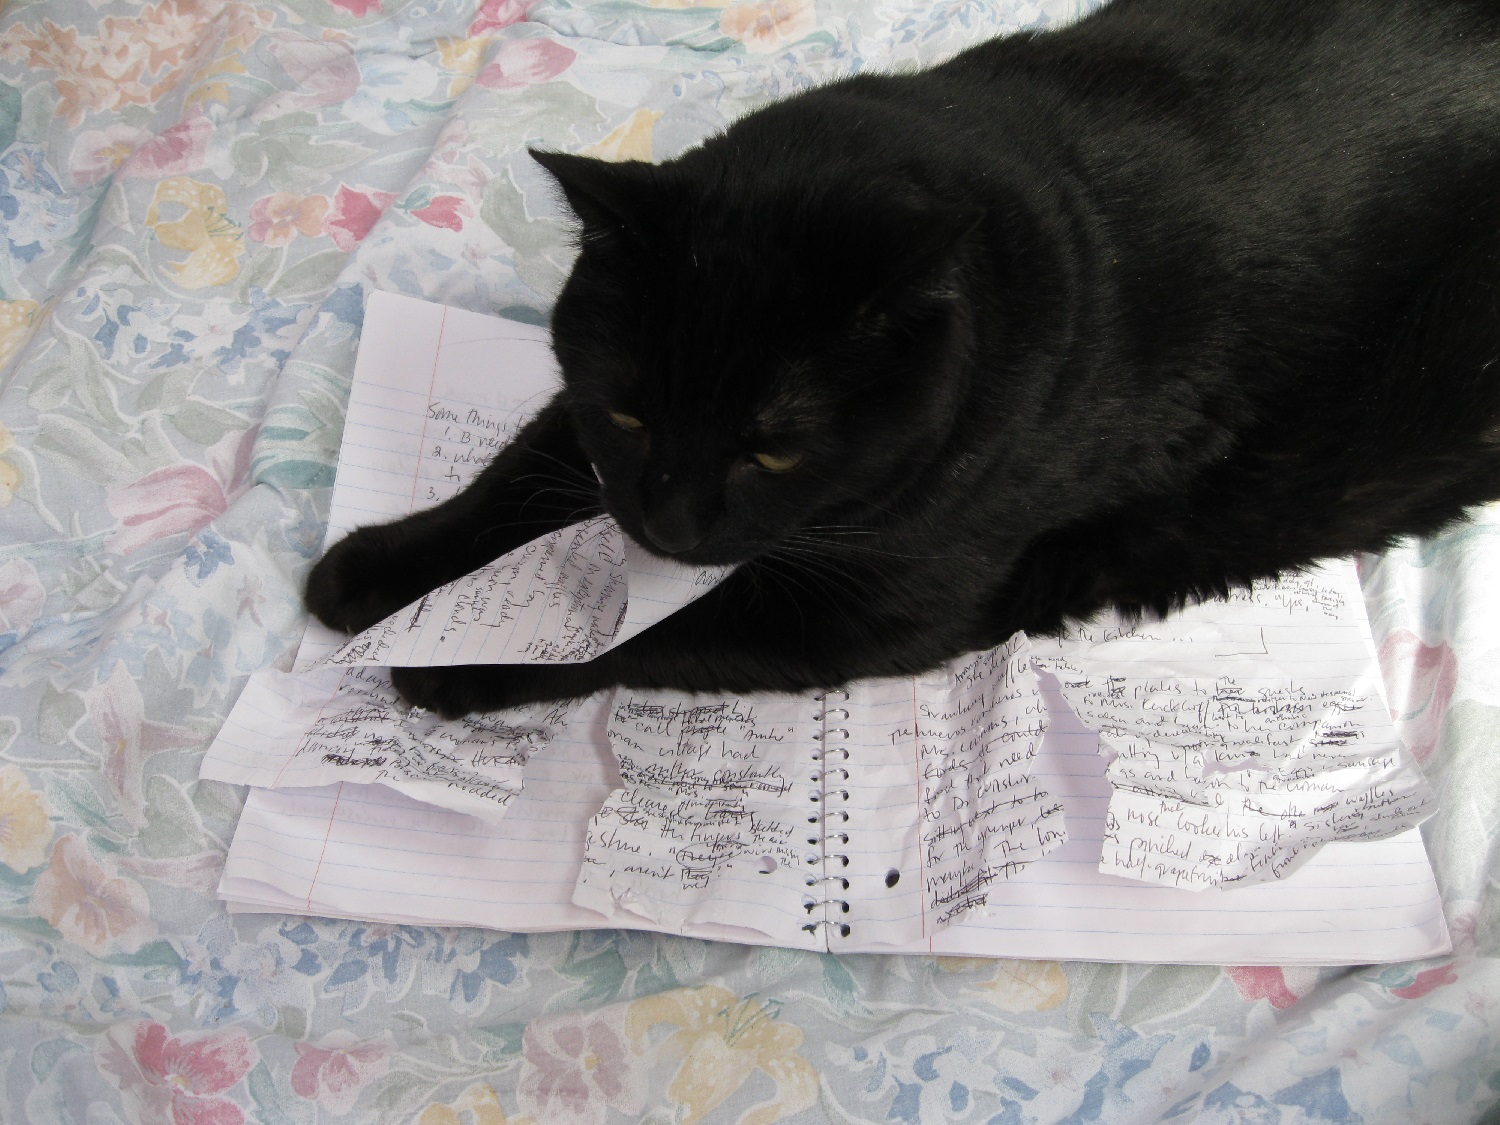 Cats possess exquisite editorial sensibilities. Mister Y removes some text.